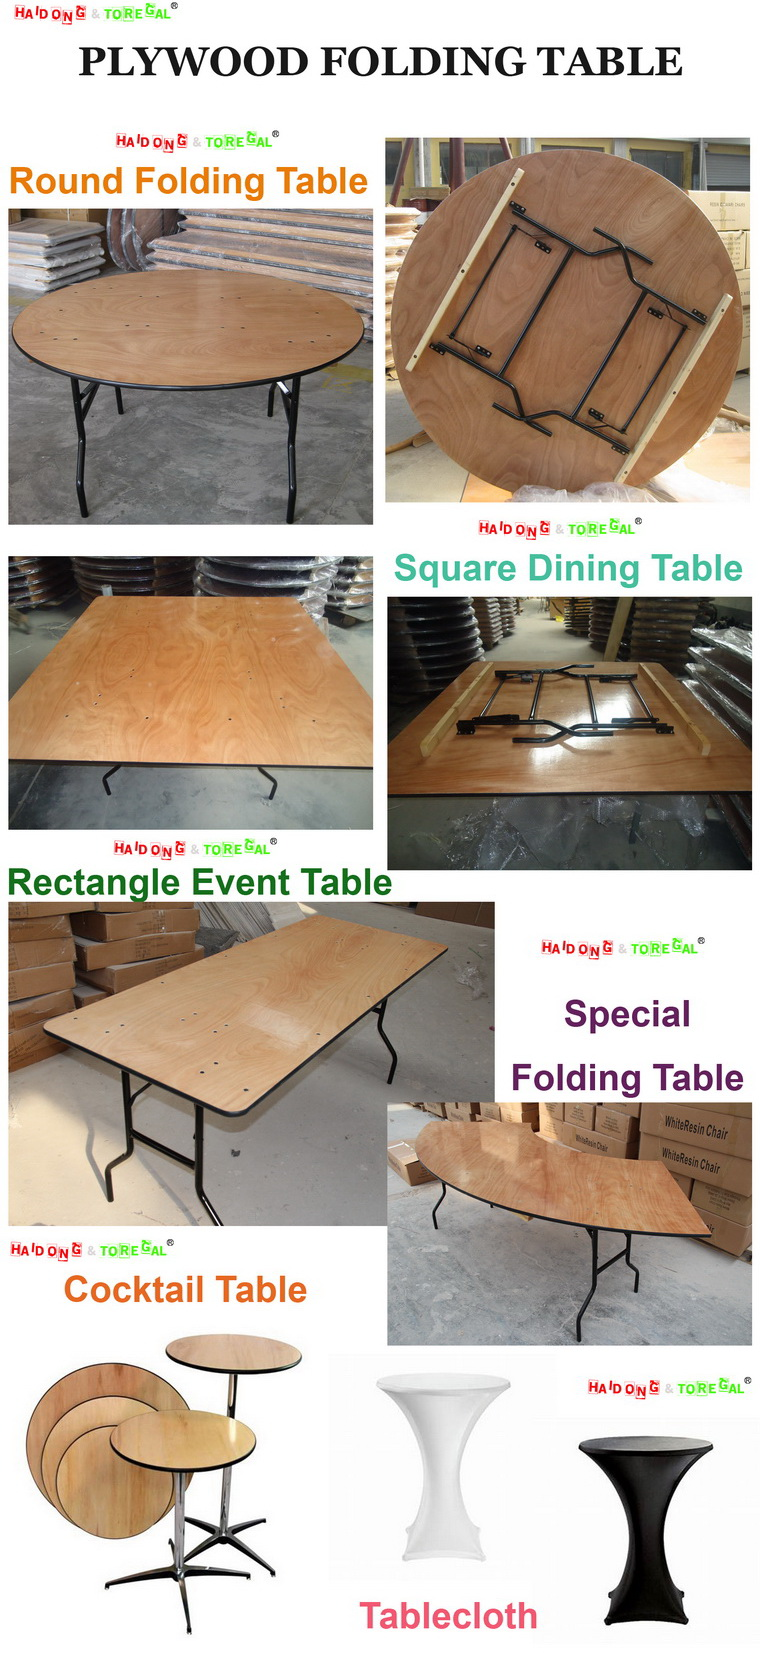 Plywood EVENT TABLE 3.jpg